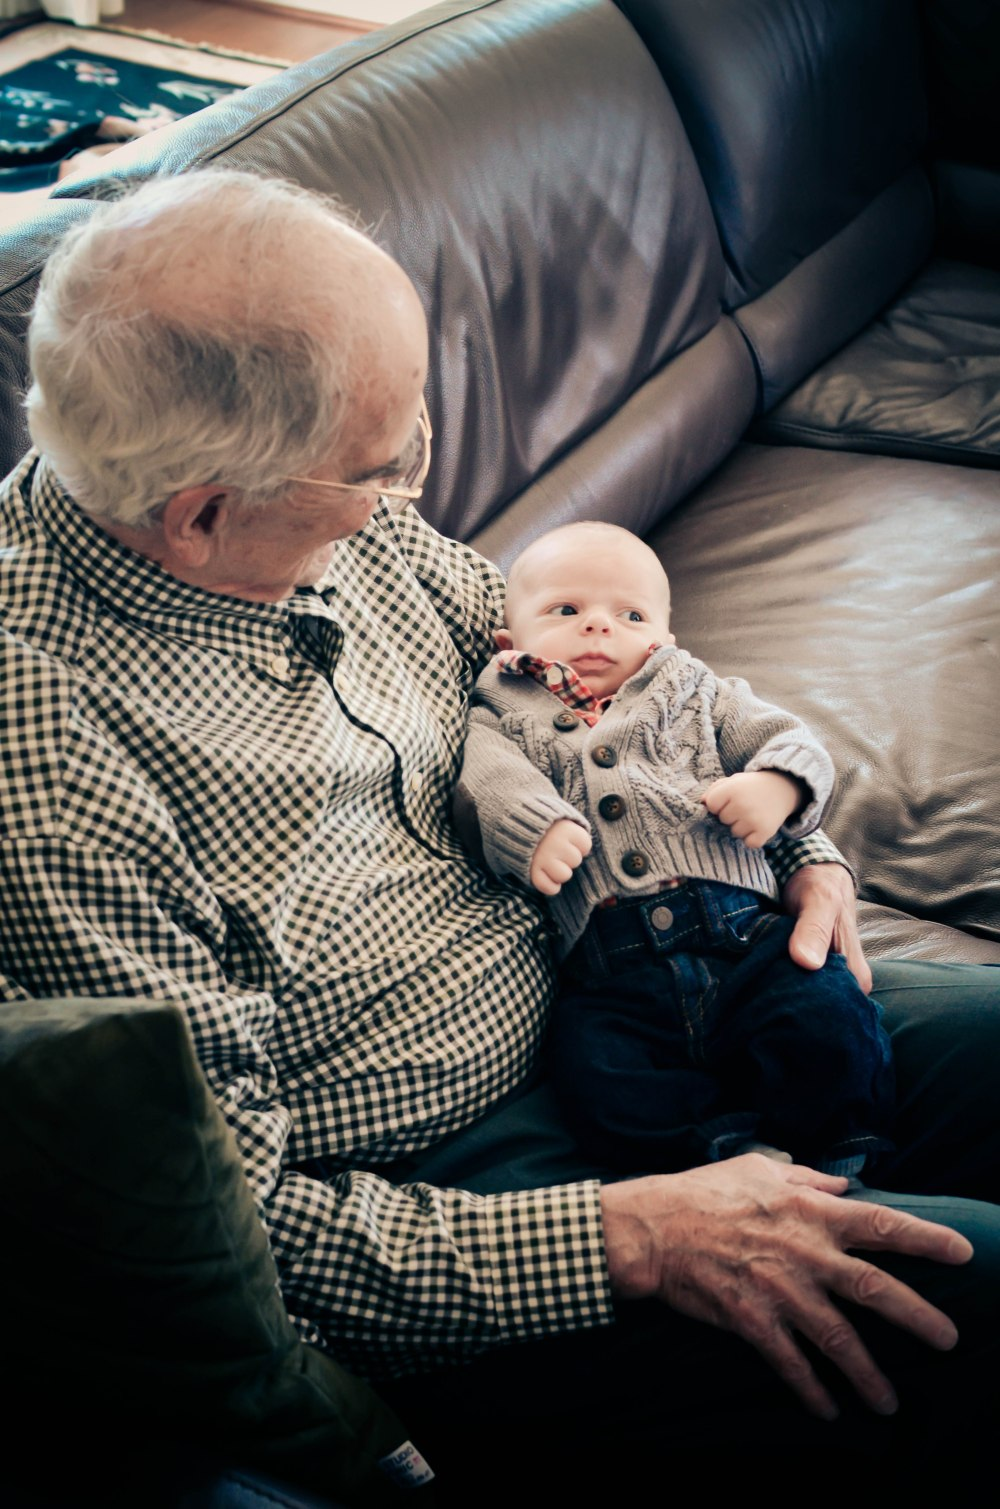 Great gramps has a world of good tales for you kid.